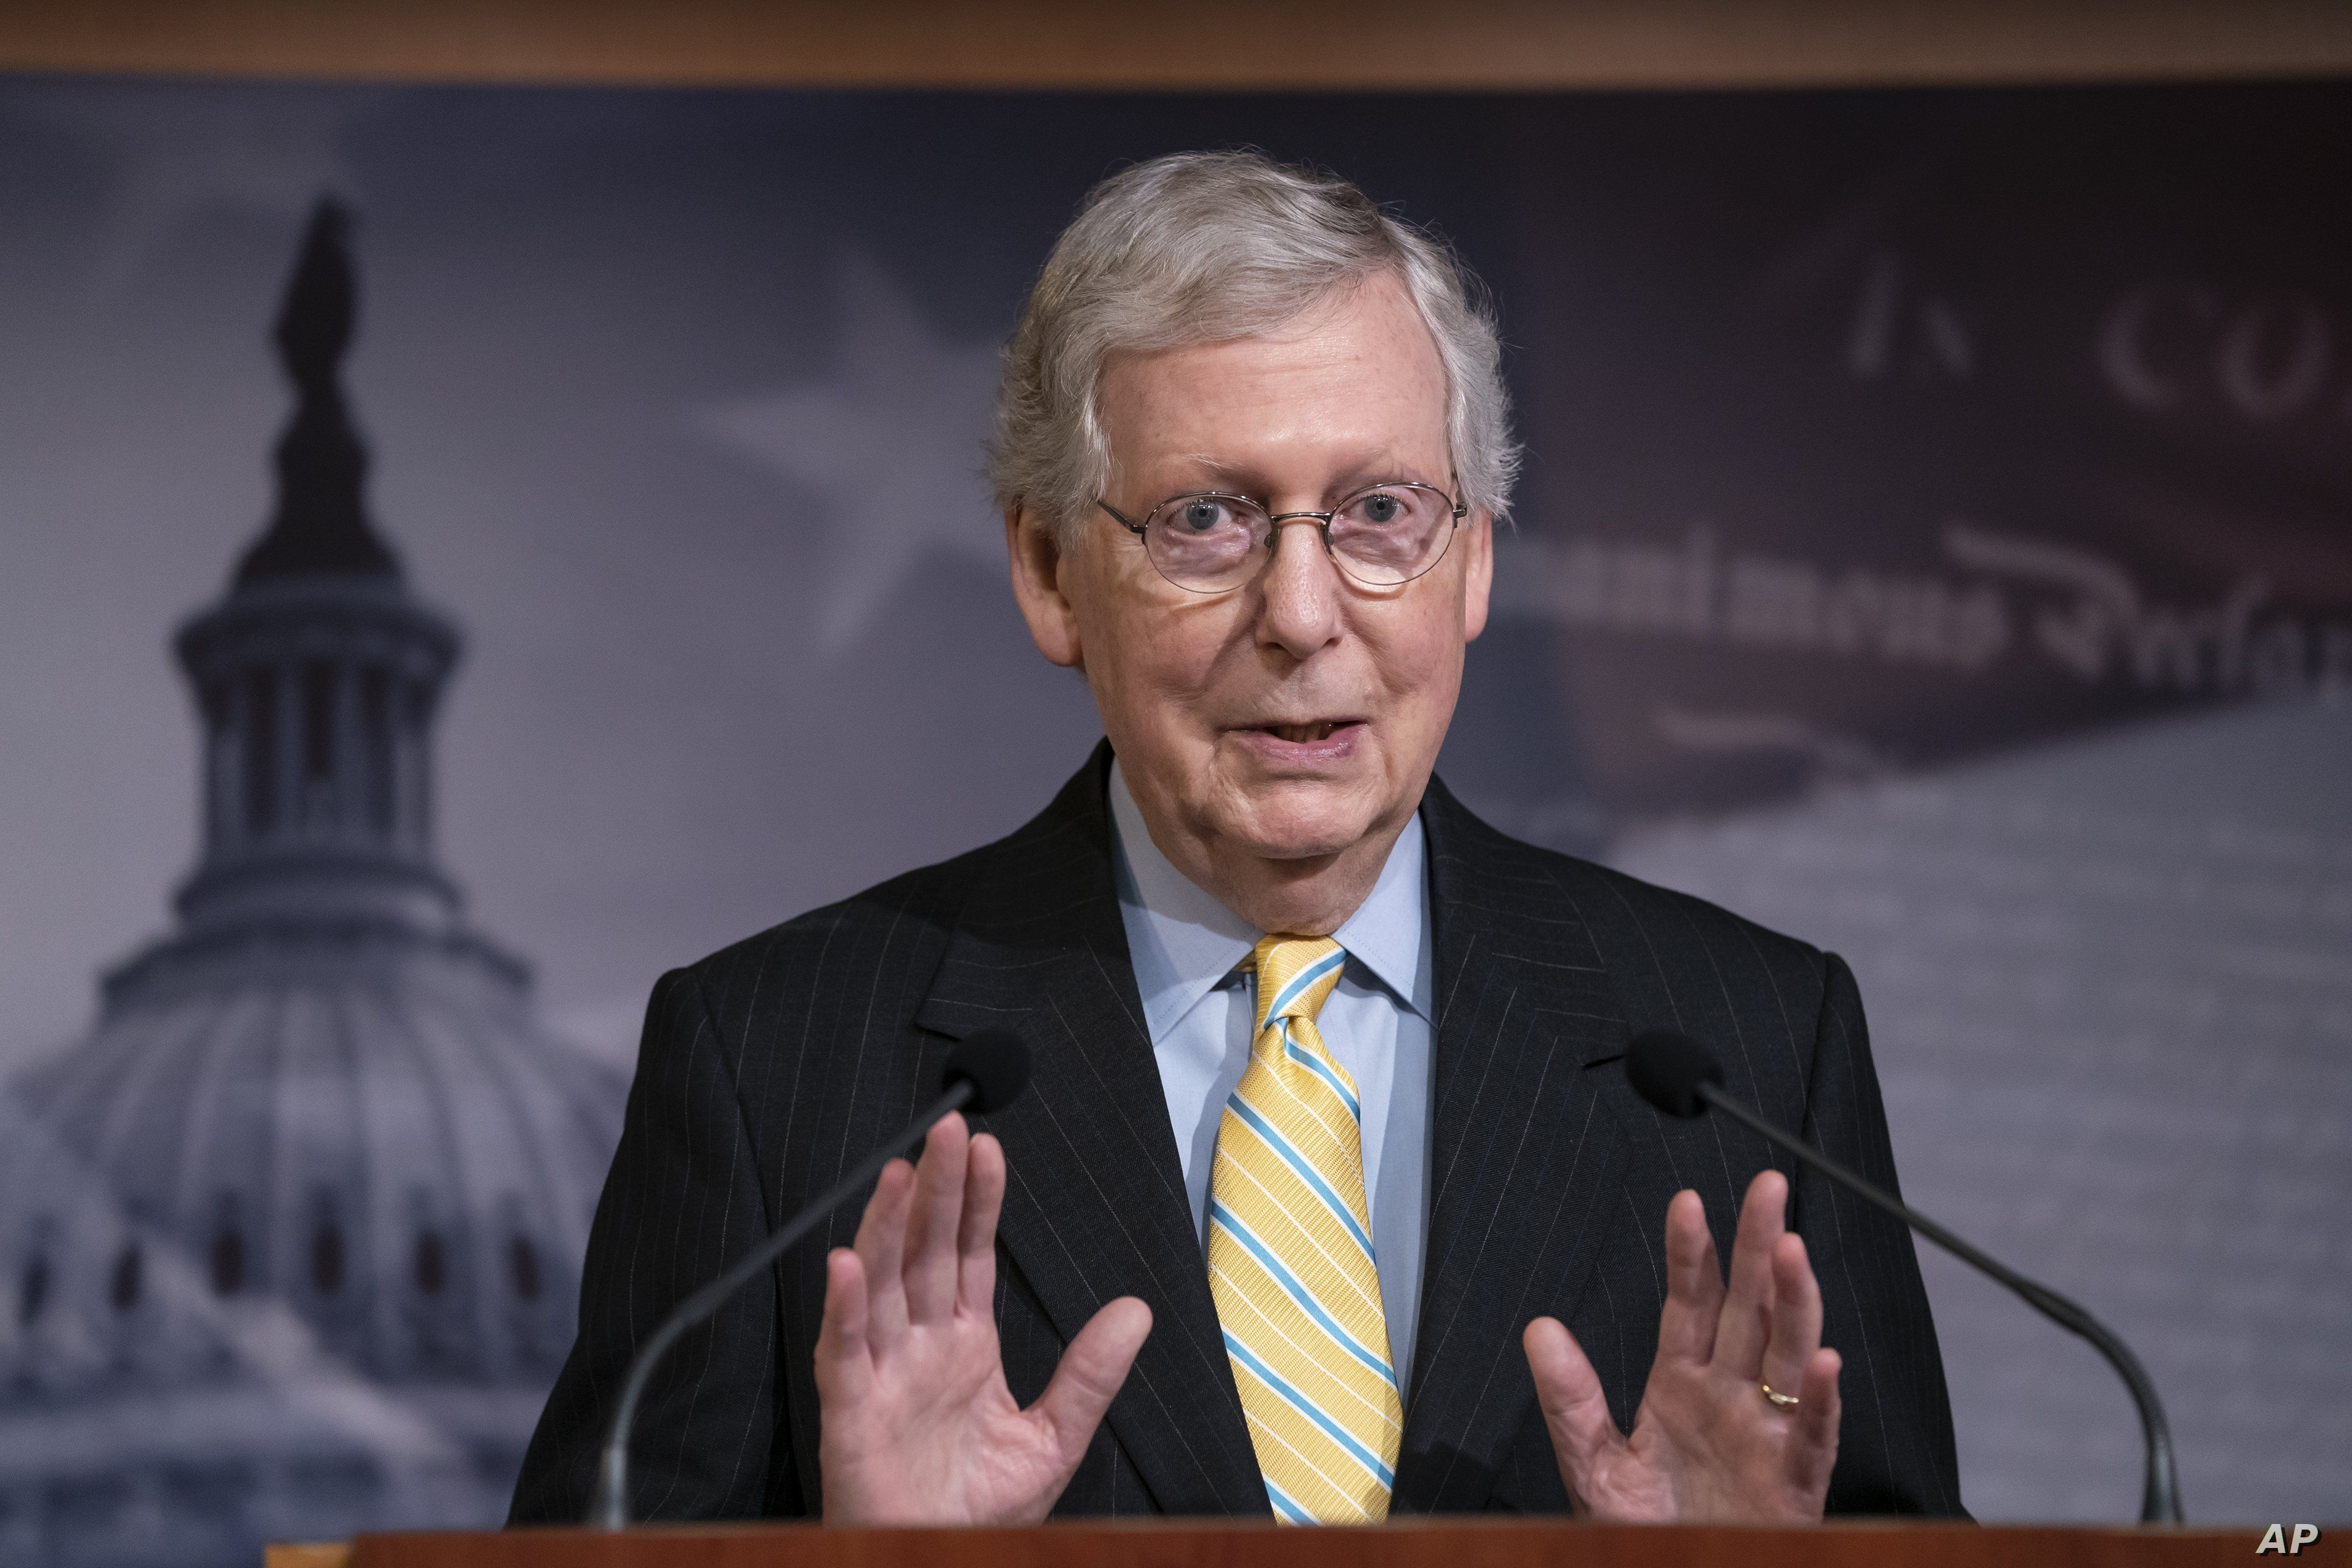 Senate Majority Leader Mitch McConnell, R-Ky., holds a news conference ahead of the Fourth of July break, at the Capitol in Washington, Thursday, June 27, 2019. House Speaker Nancy Pelosi says the House will